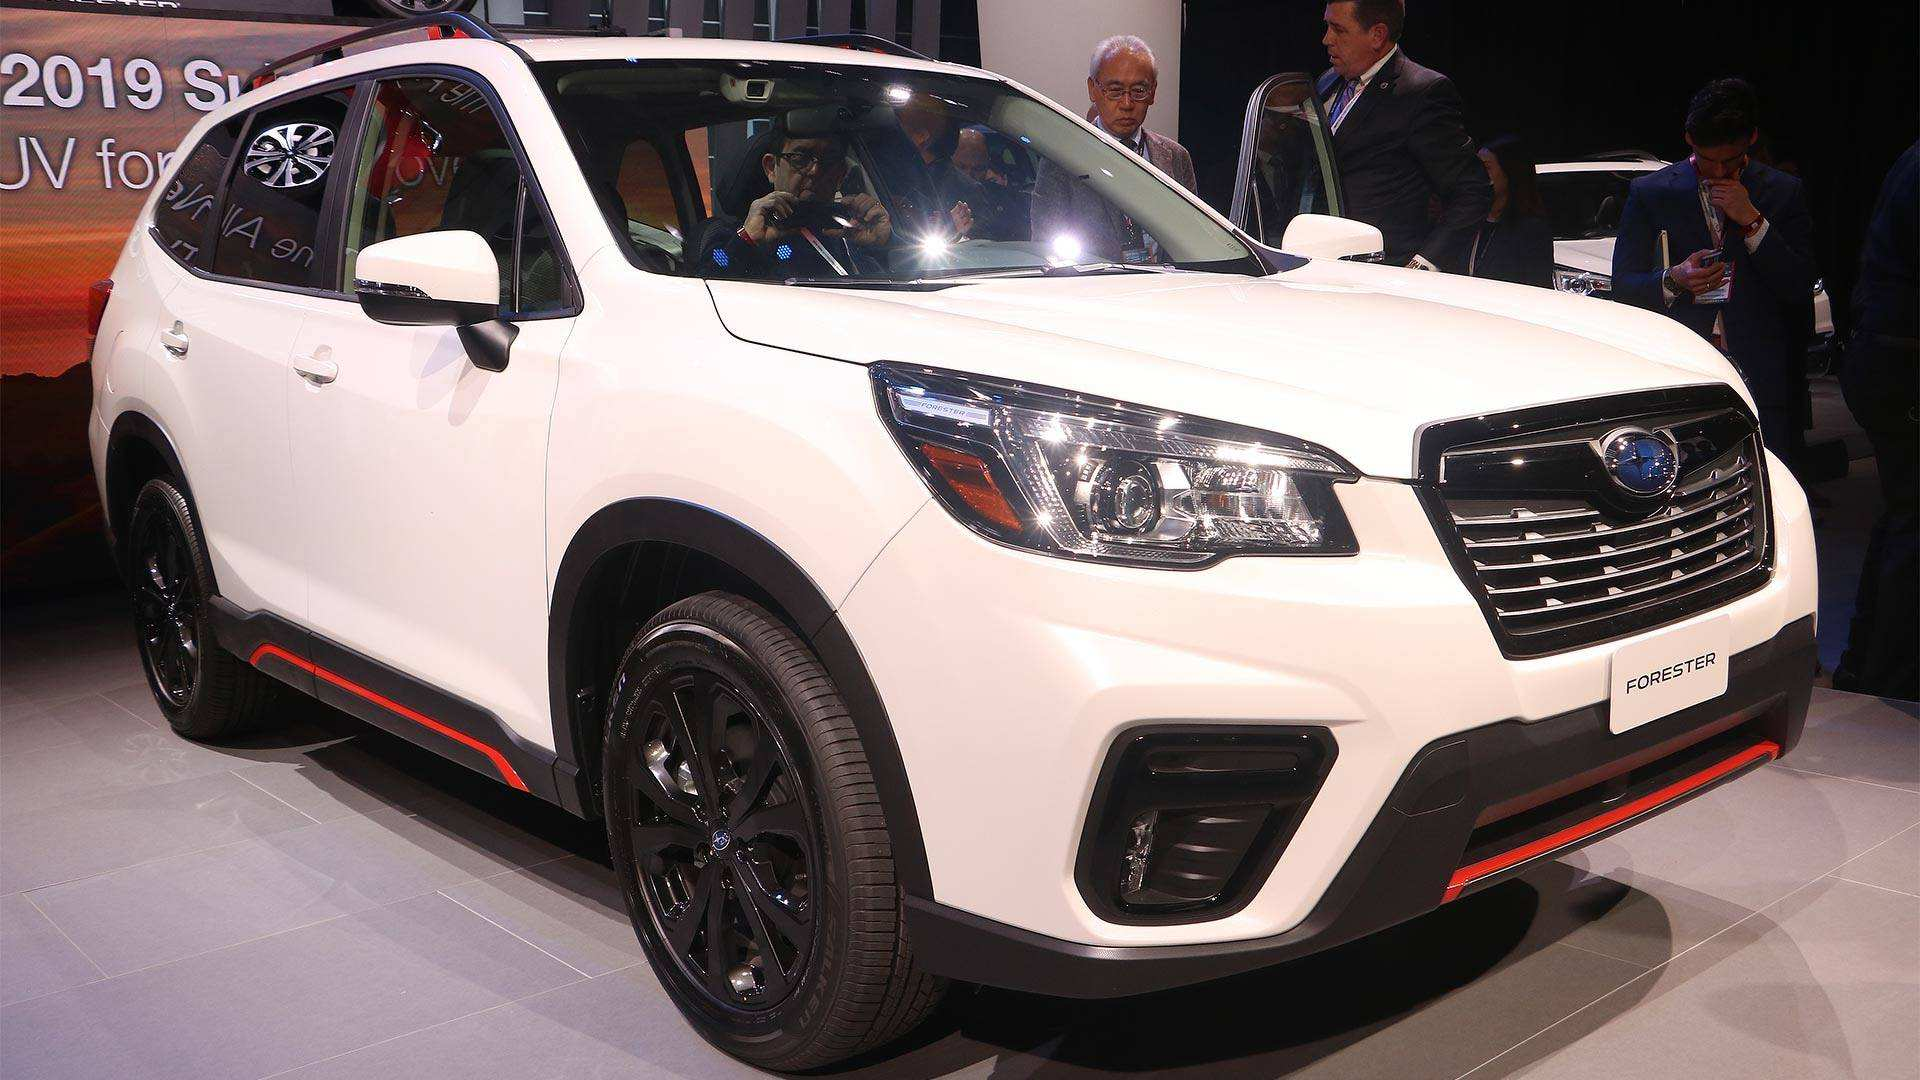 39 Gallery of 2020 Subaru Forester Gas Mileage New Review for 2020 Subaru Forester Gas Mileage